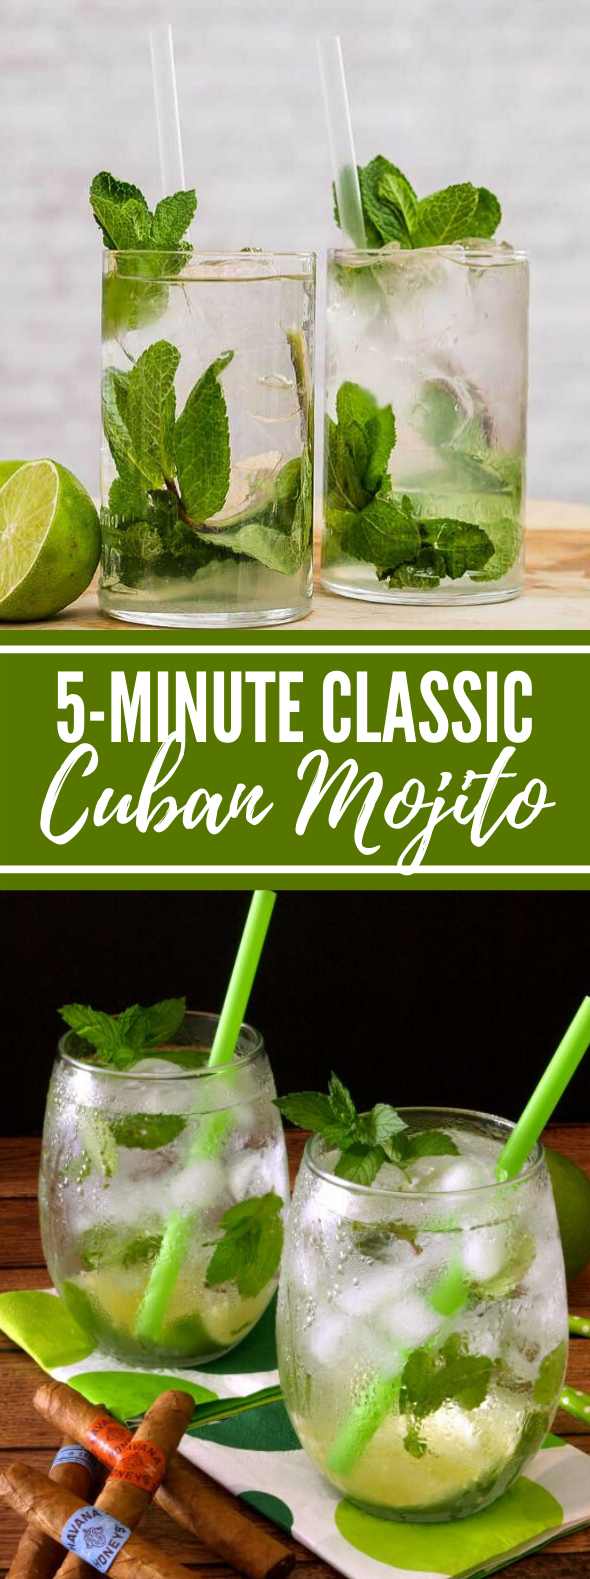 5-MINUTE CLASSIC CUBAN MOJITOS #drinks #cocktails